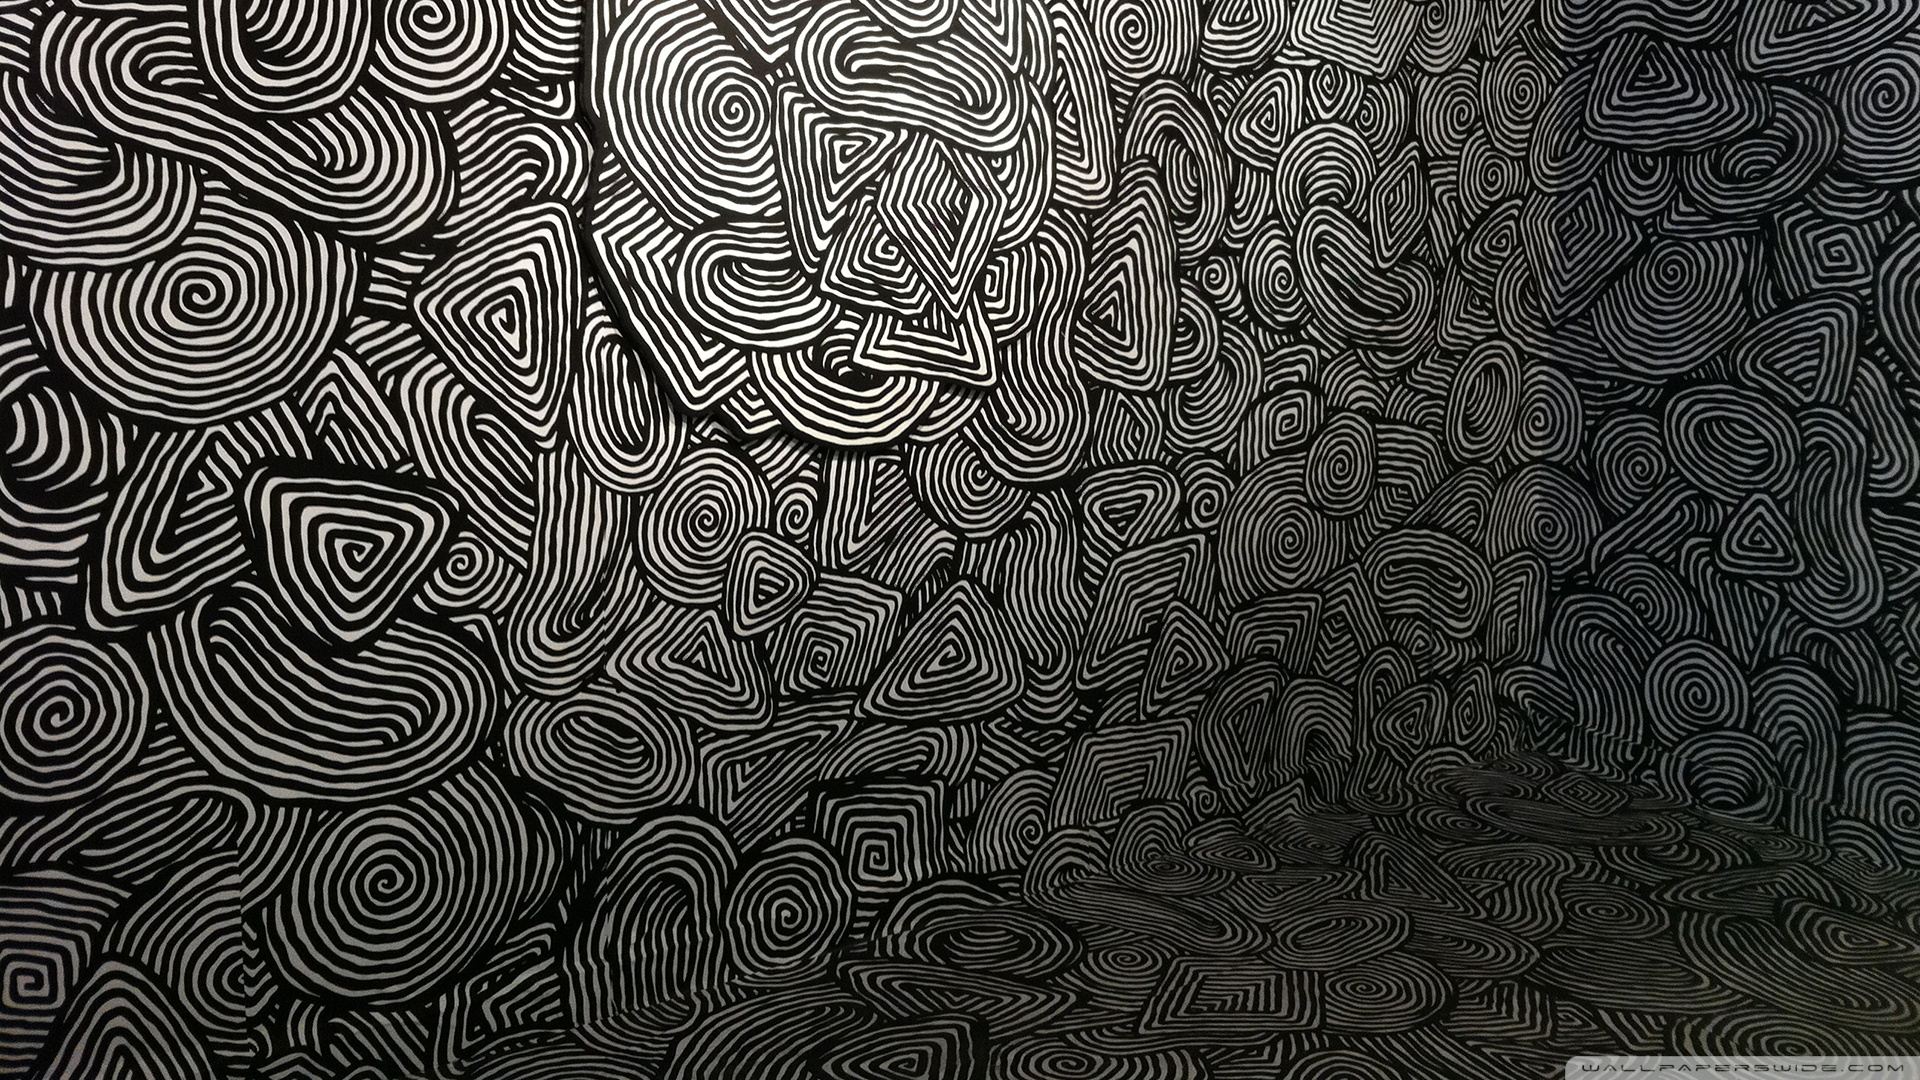 Mind Easer Psychedelic Pattern Wallpaper 1920x1080